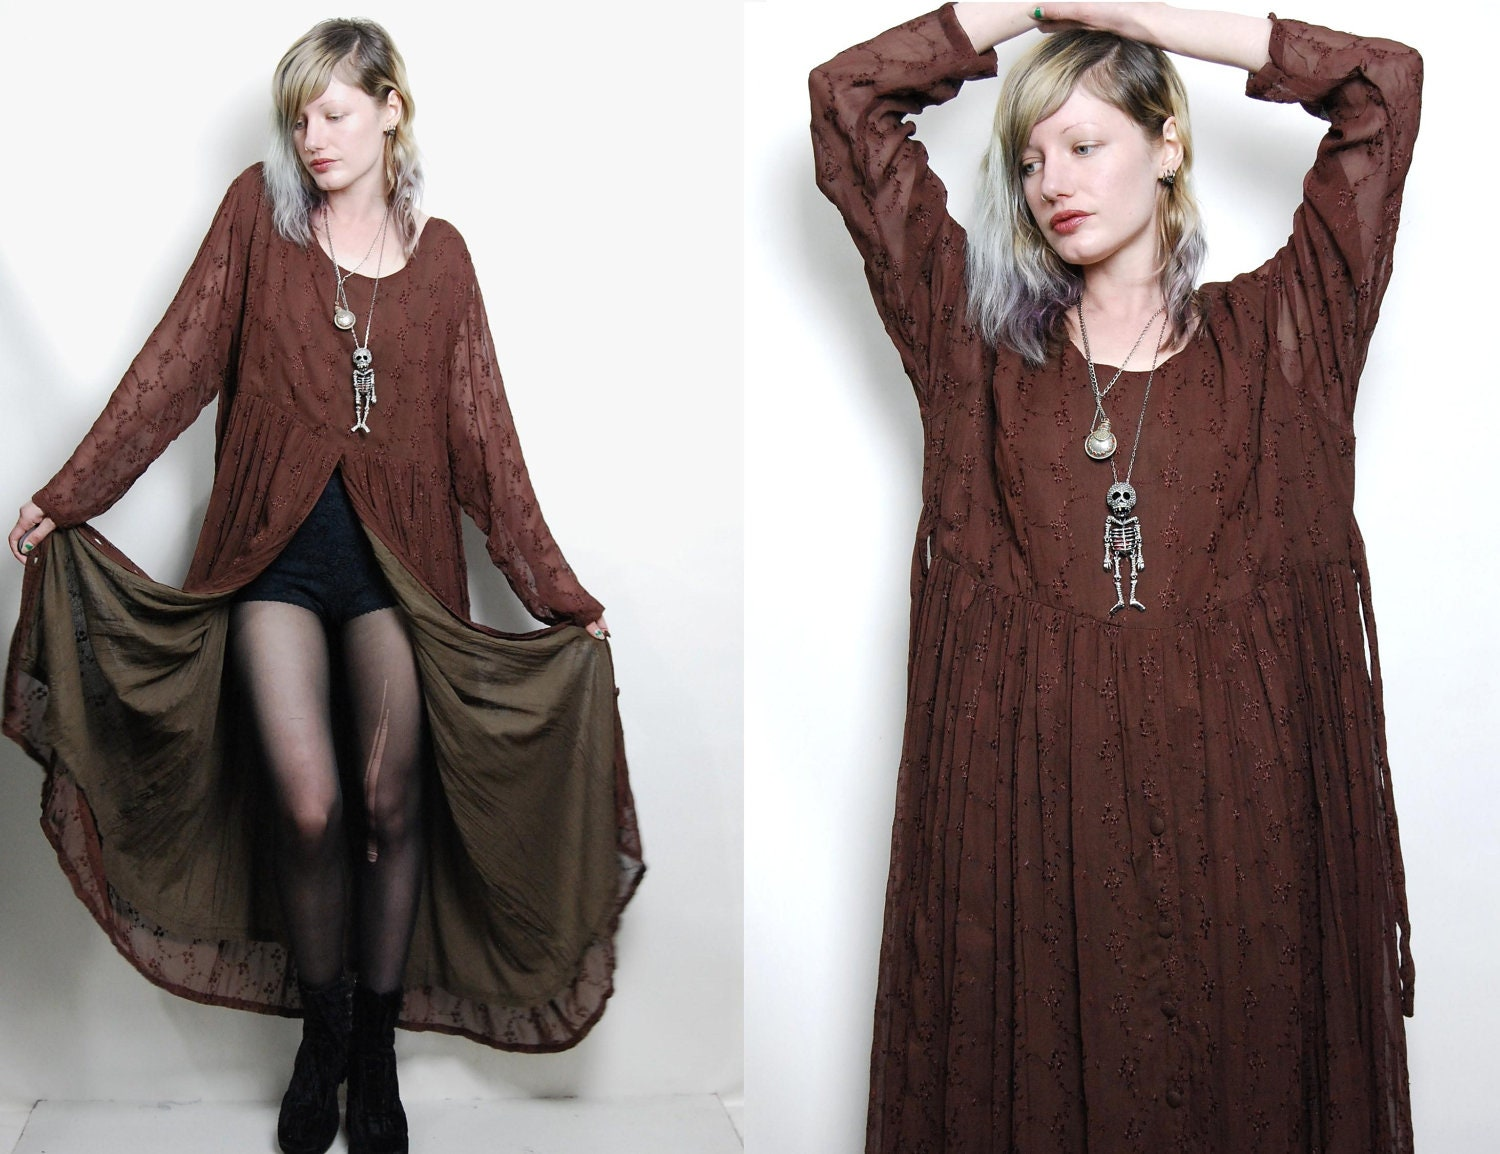 Vintage Wedding Dress 90s: 90s Vintage GRUNGE GYPSY Dress Babydoll Long Maxi Button Down